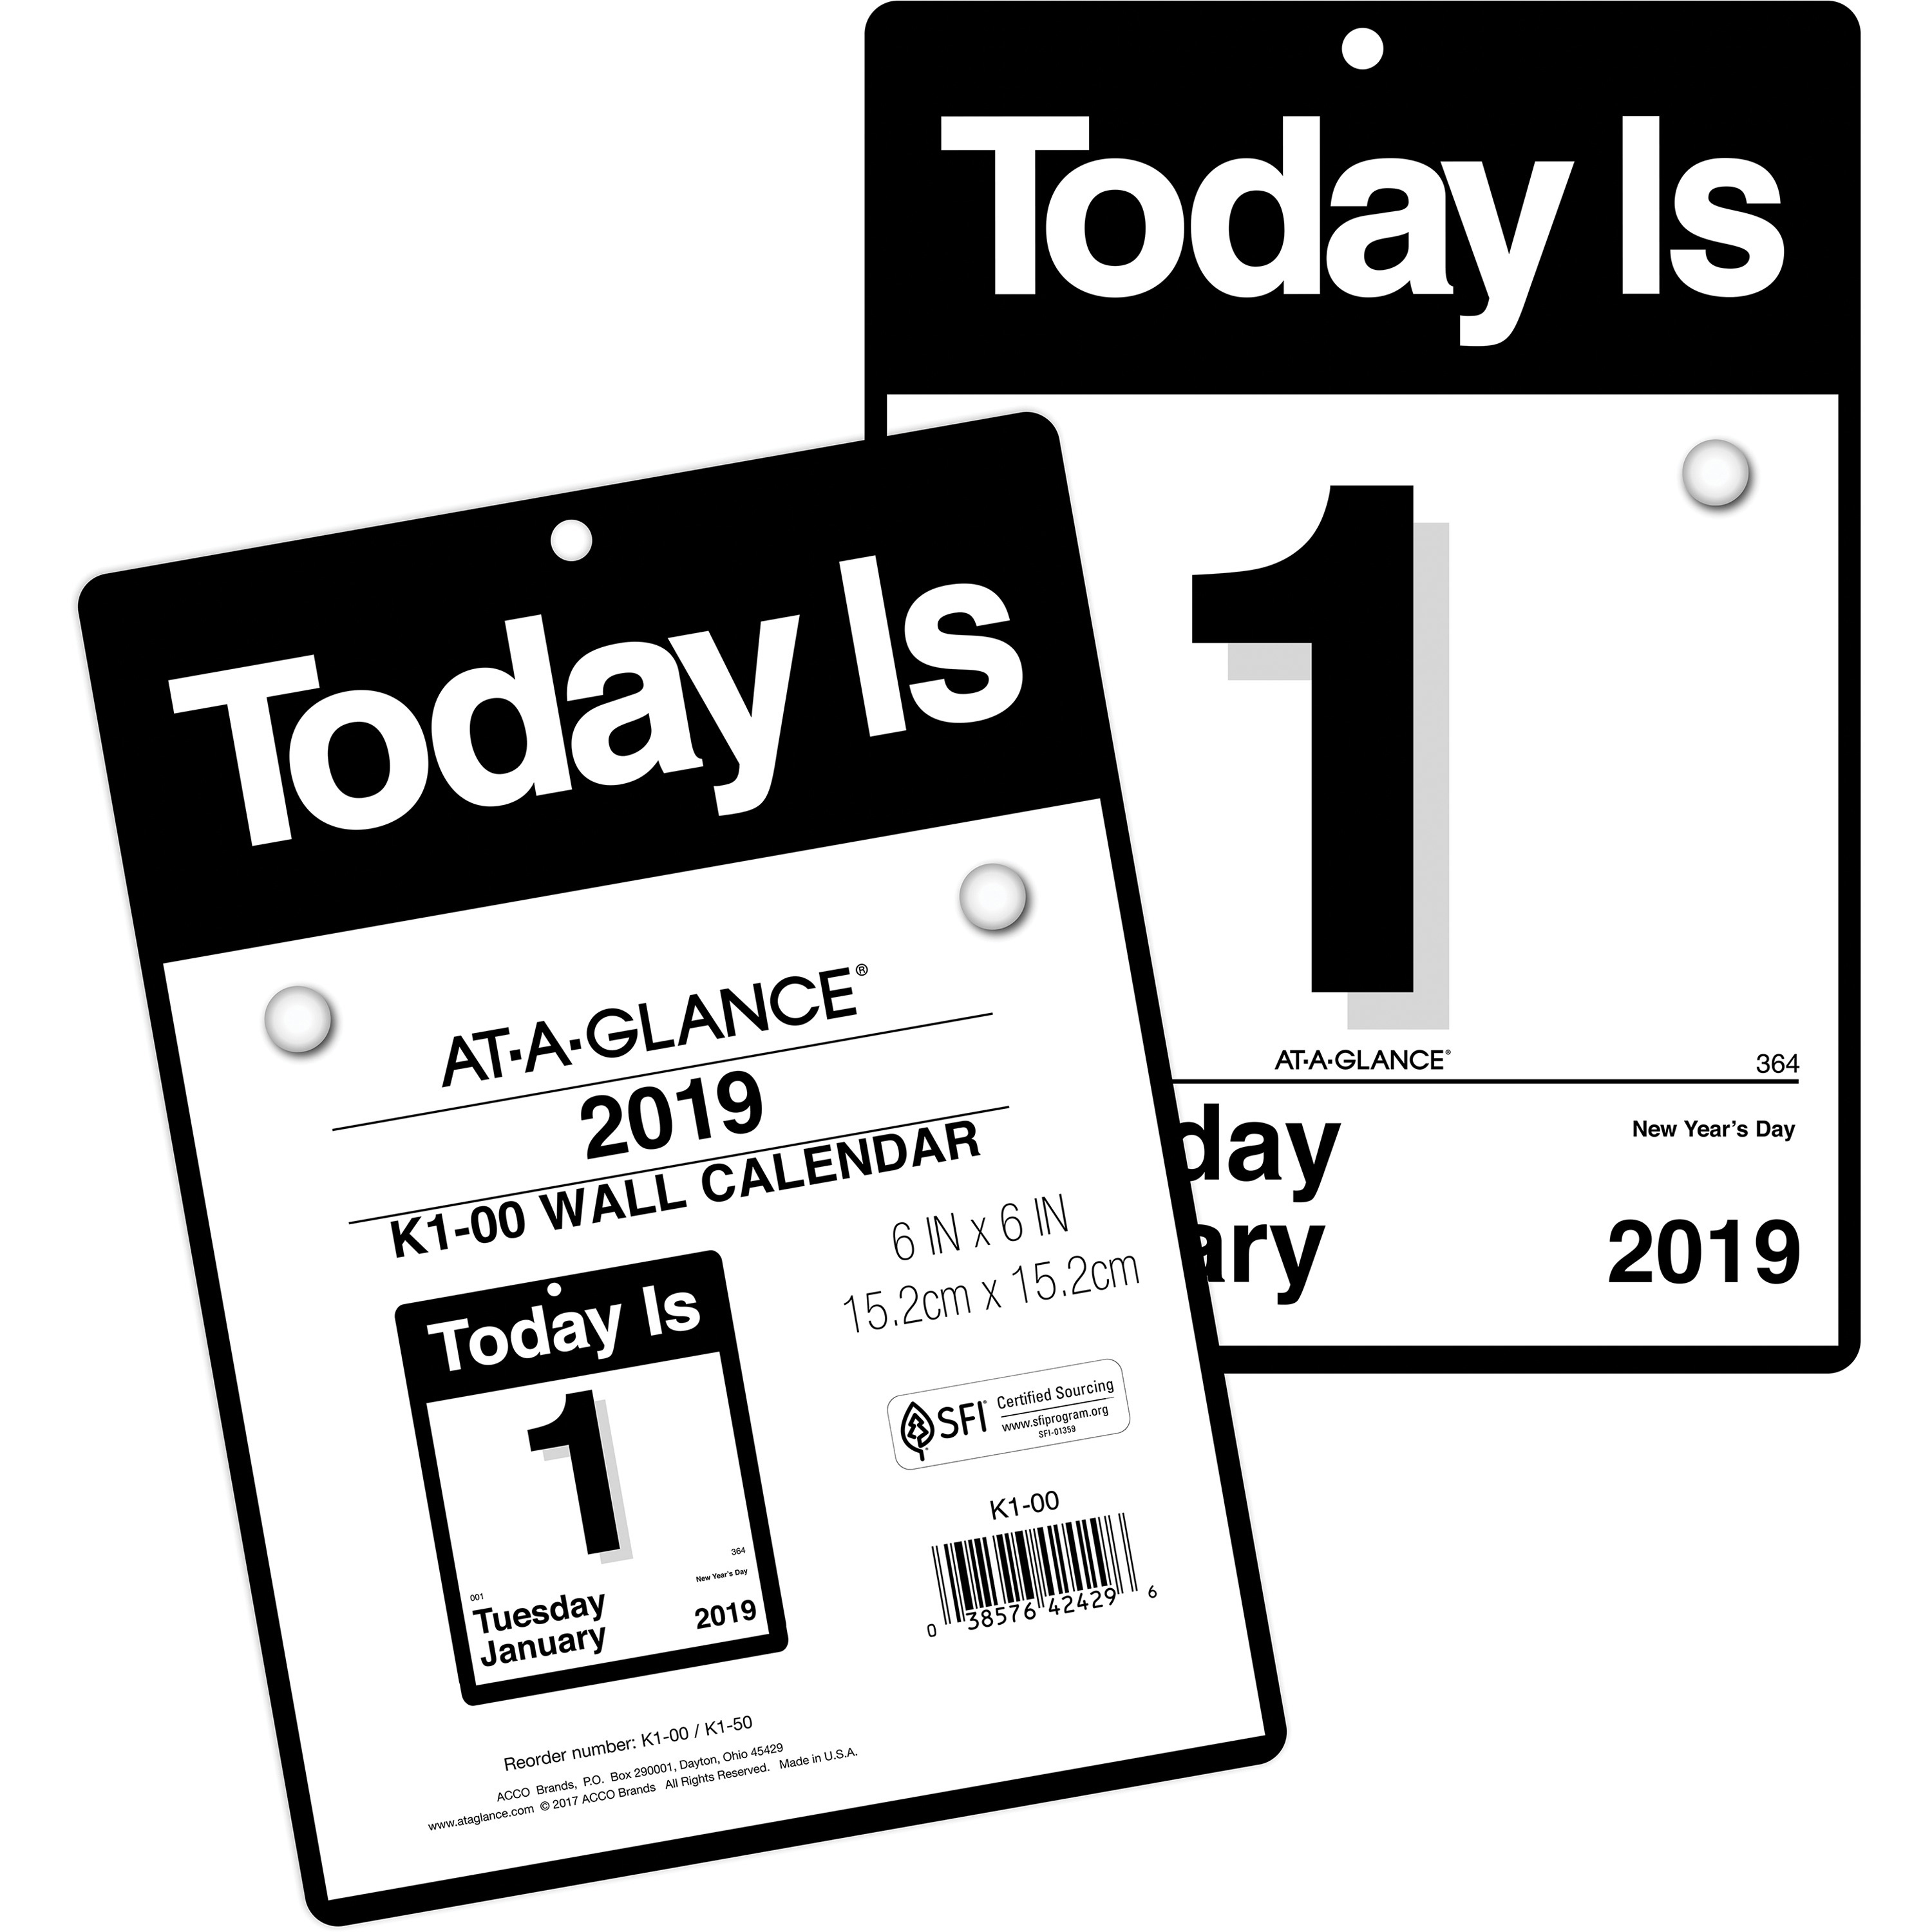 "At-A-Glance Today Is Wall Calendar - Yes - Daily - 1 Year - January 2020  Till December 2020 - 1 Day Single Page Layout - 6 5/8"" X 9 1/8"" - Wall"